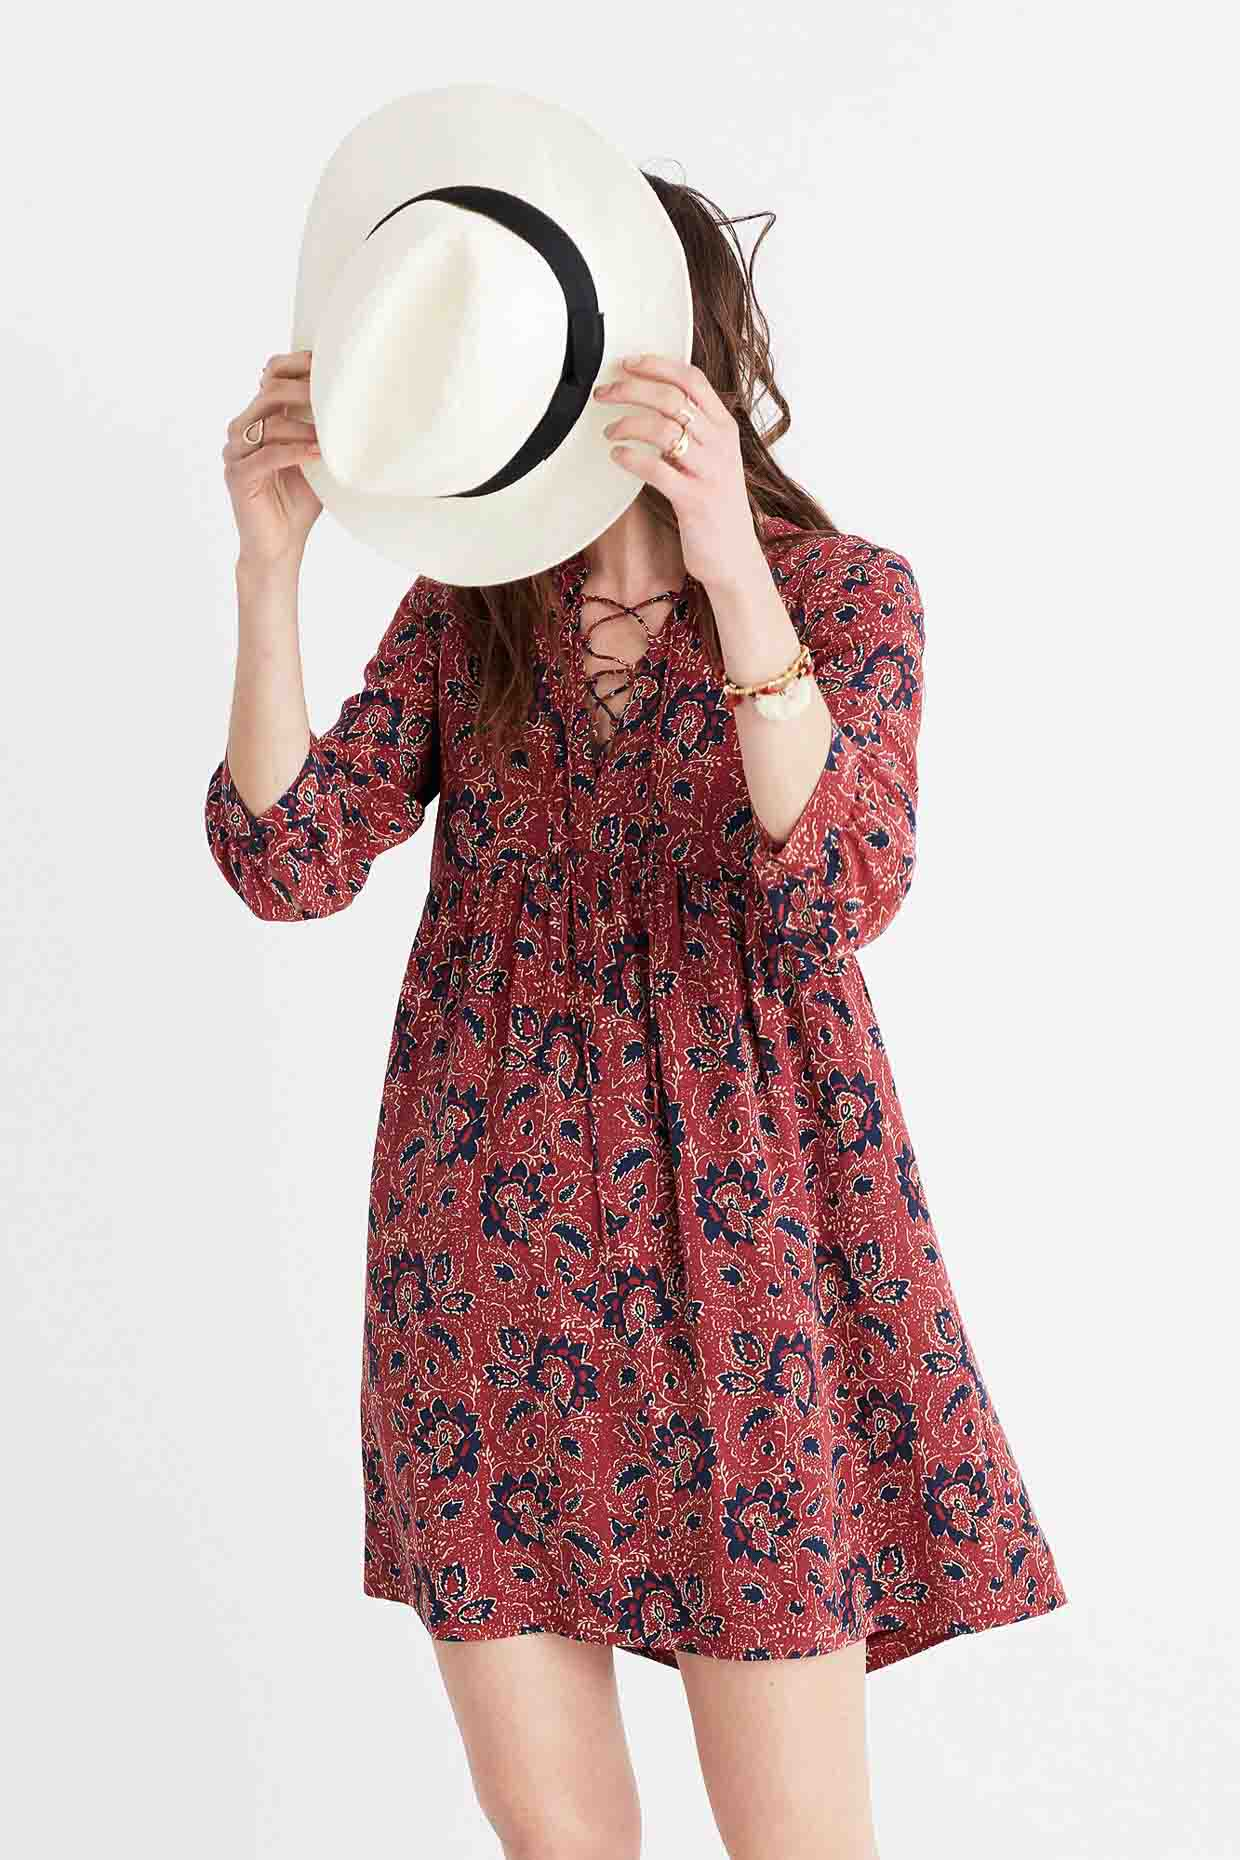 Madewell Spring Selects And New Arrivals - Poor Little It Girl